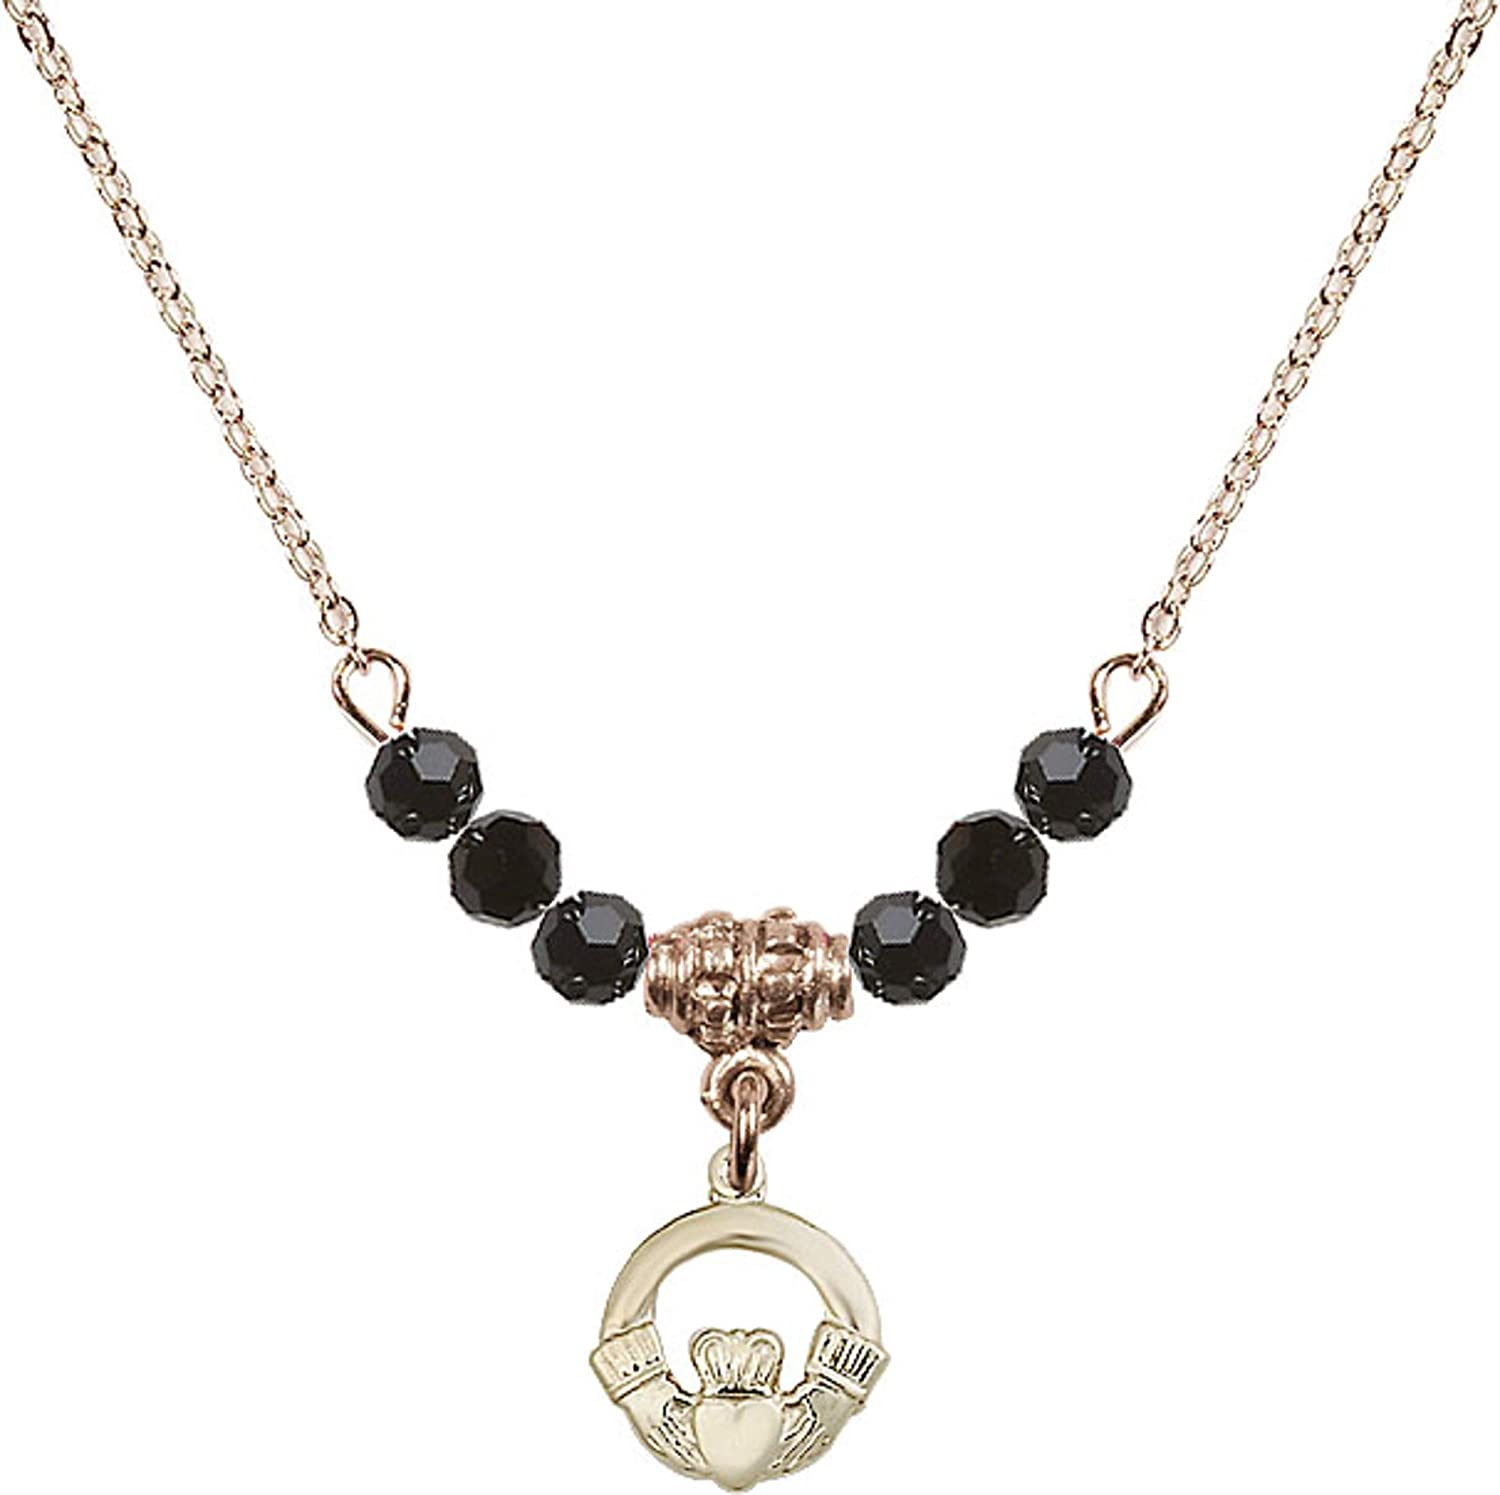 Bonyak Jewelry 18 Inch Hamilton Gold Plated Necklace w// 4mm Jet Birth Month Stone Beads and Claddagh Charm